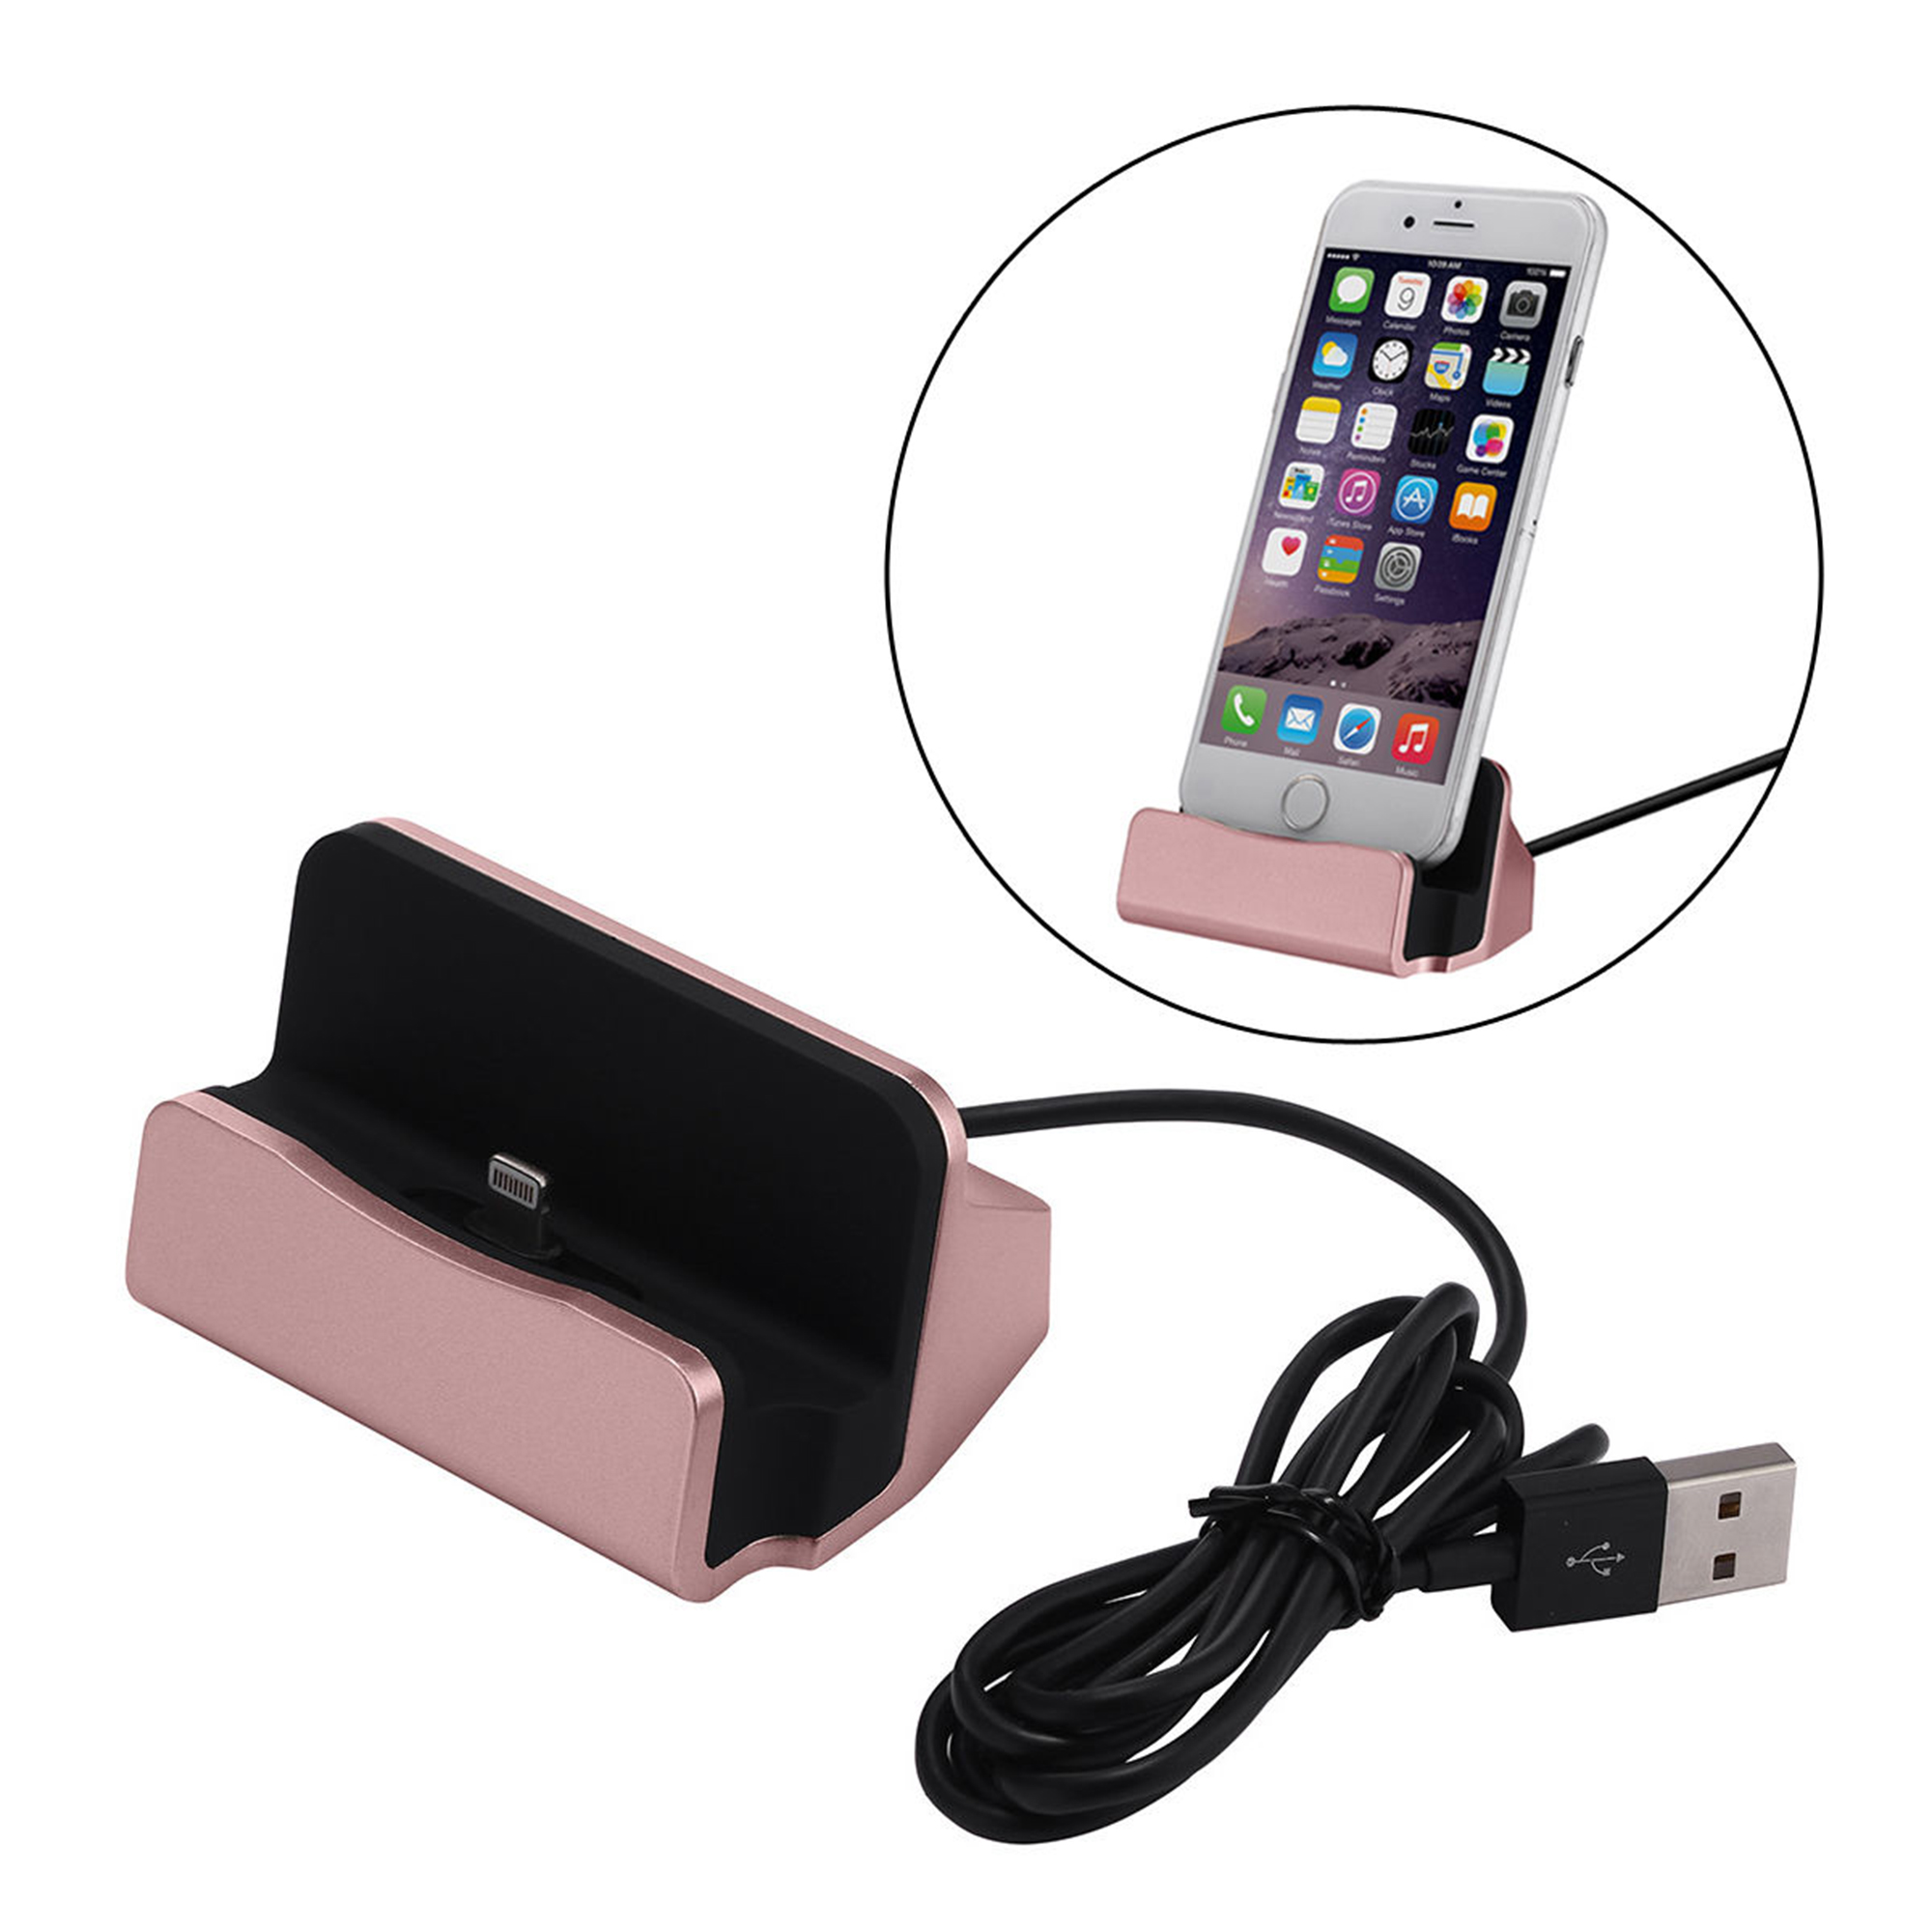 Desktop Charger Charging Dock Station Cradle for iPhone 5 6 6s 7 Plus Mobile Cellphone Rose Gold by